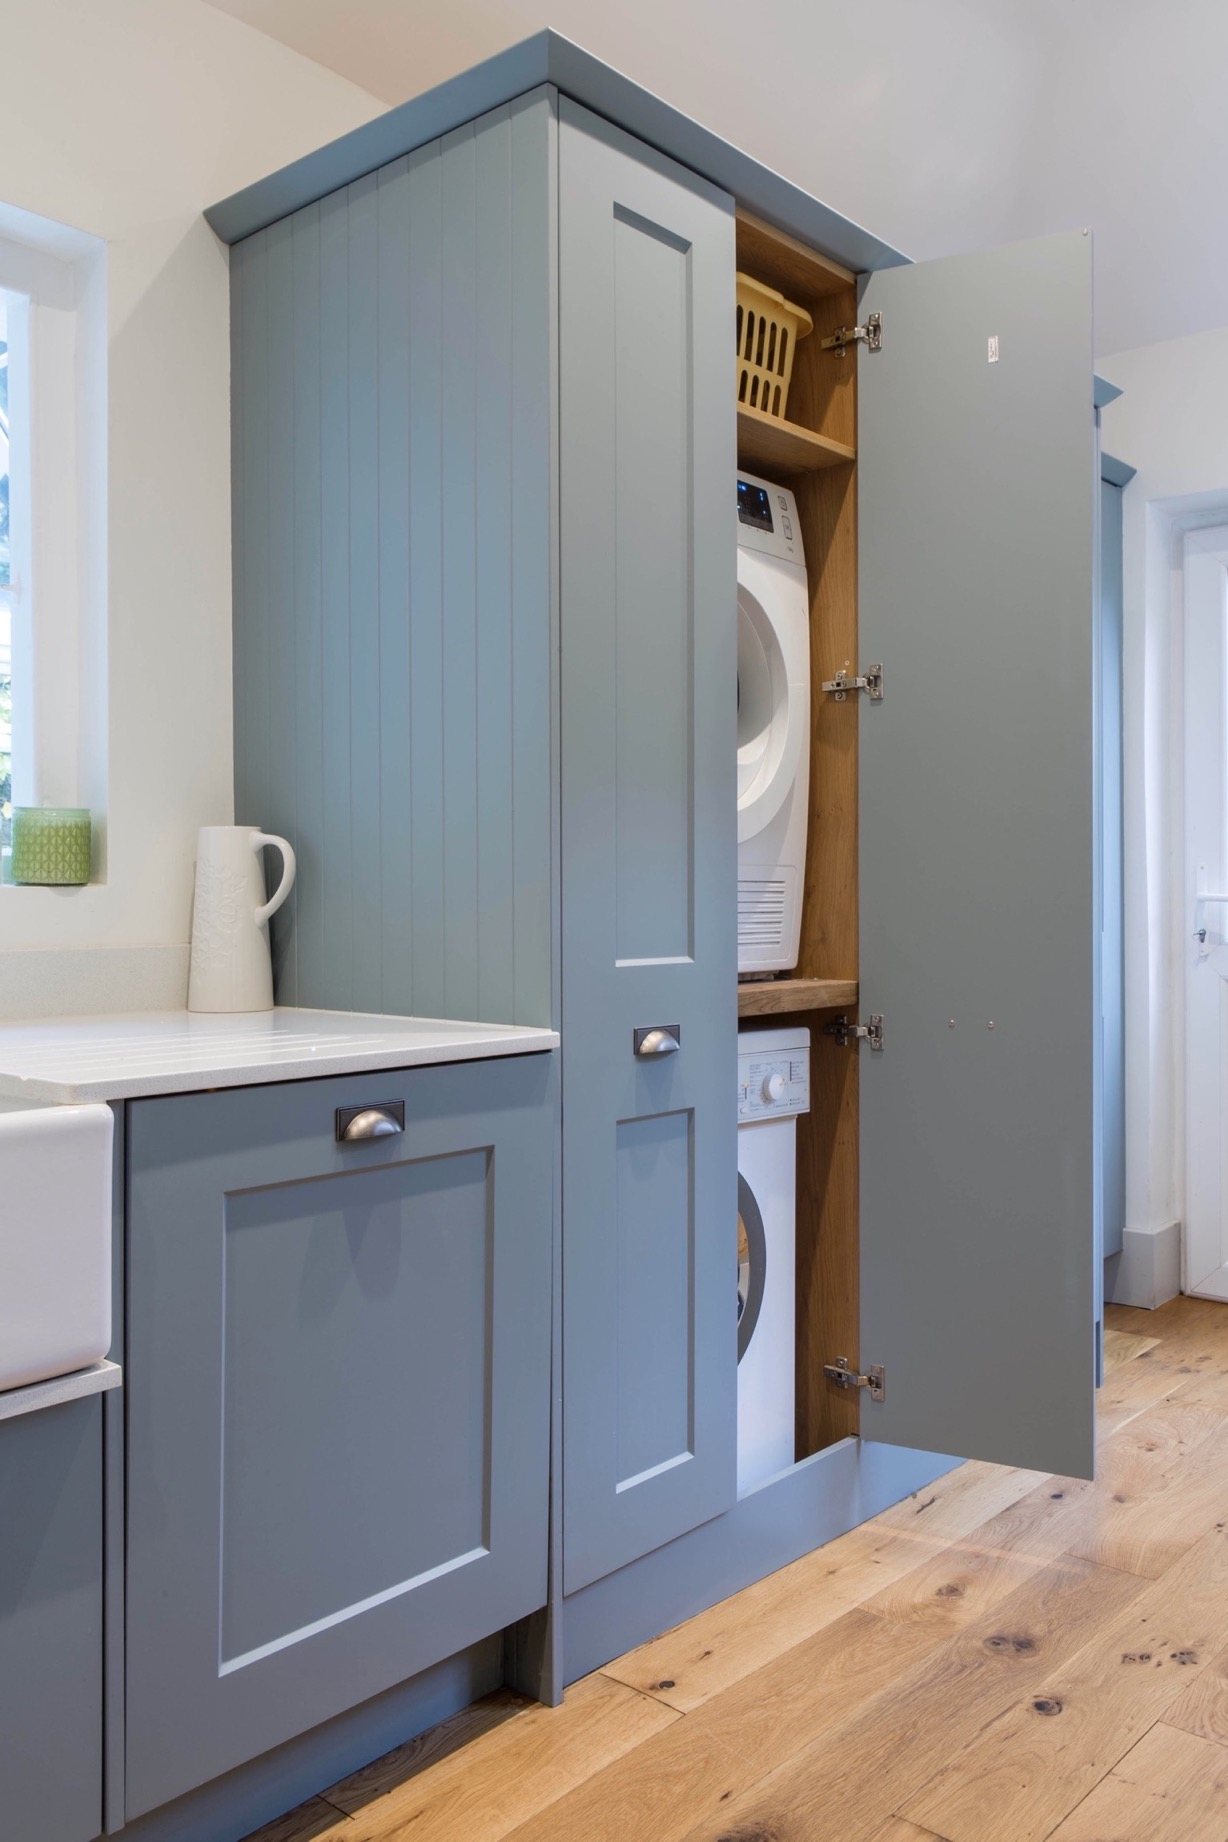 washing machine and clothes dryer in cupboard thame bespoke kitchen design oxfordshire 2